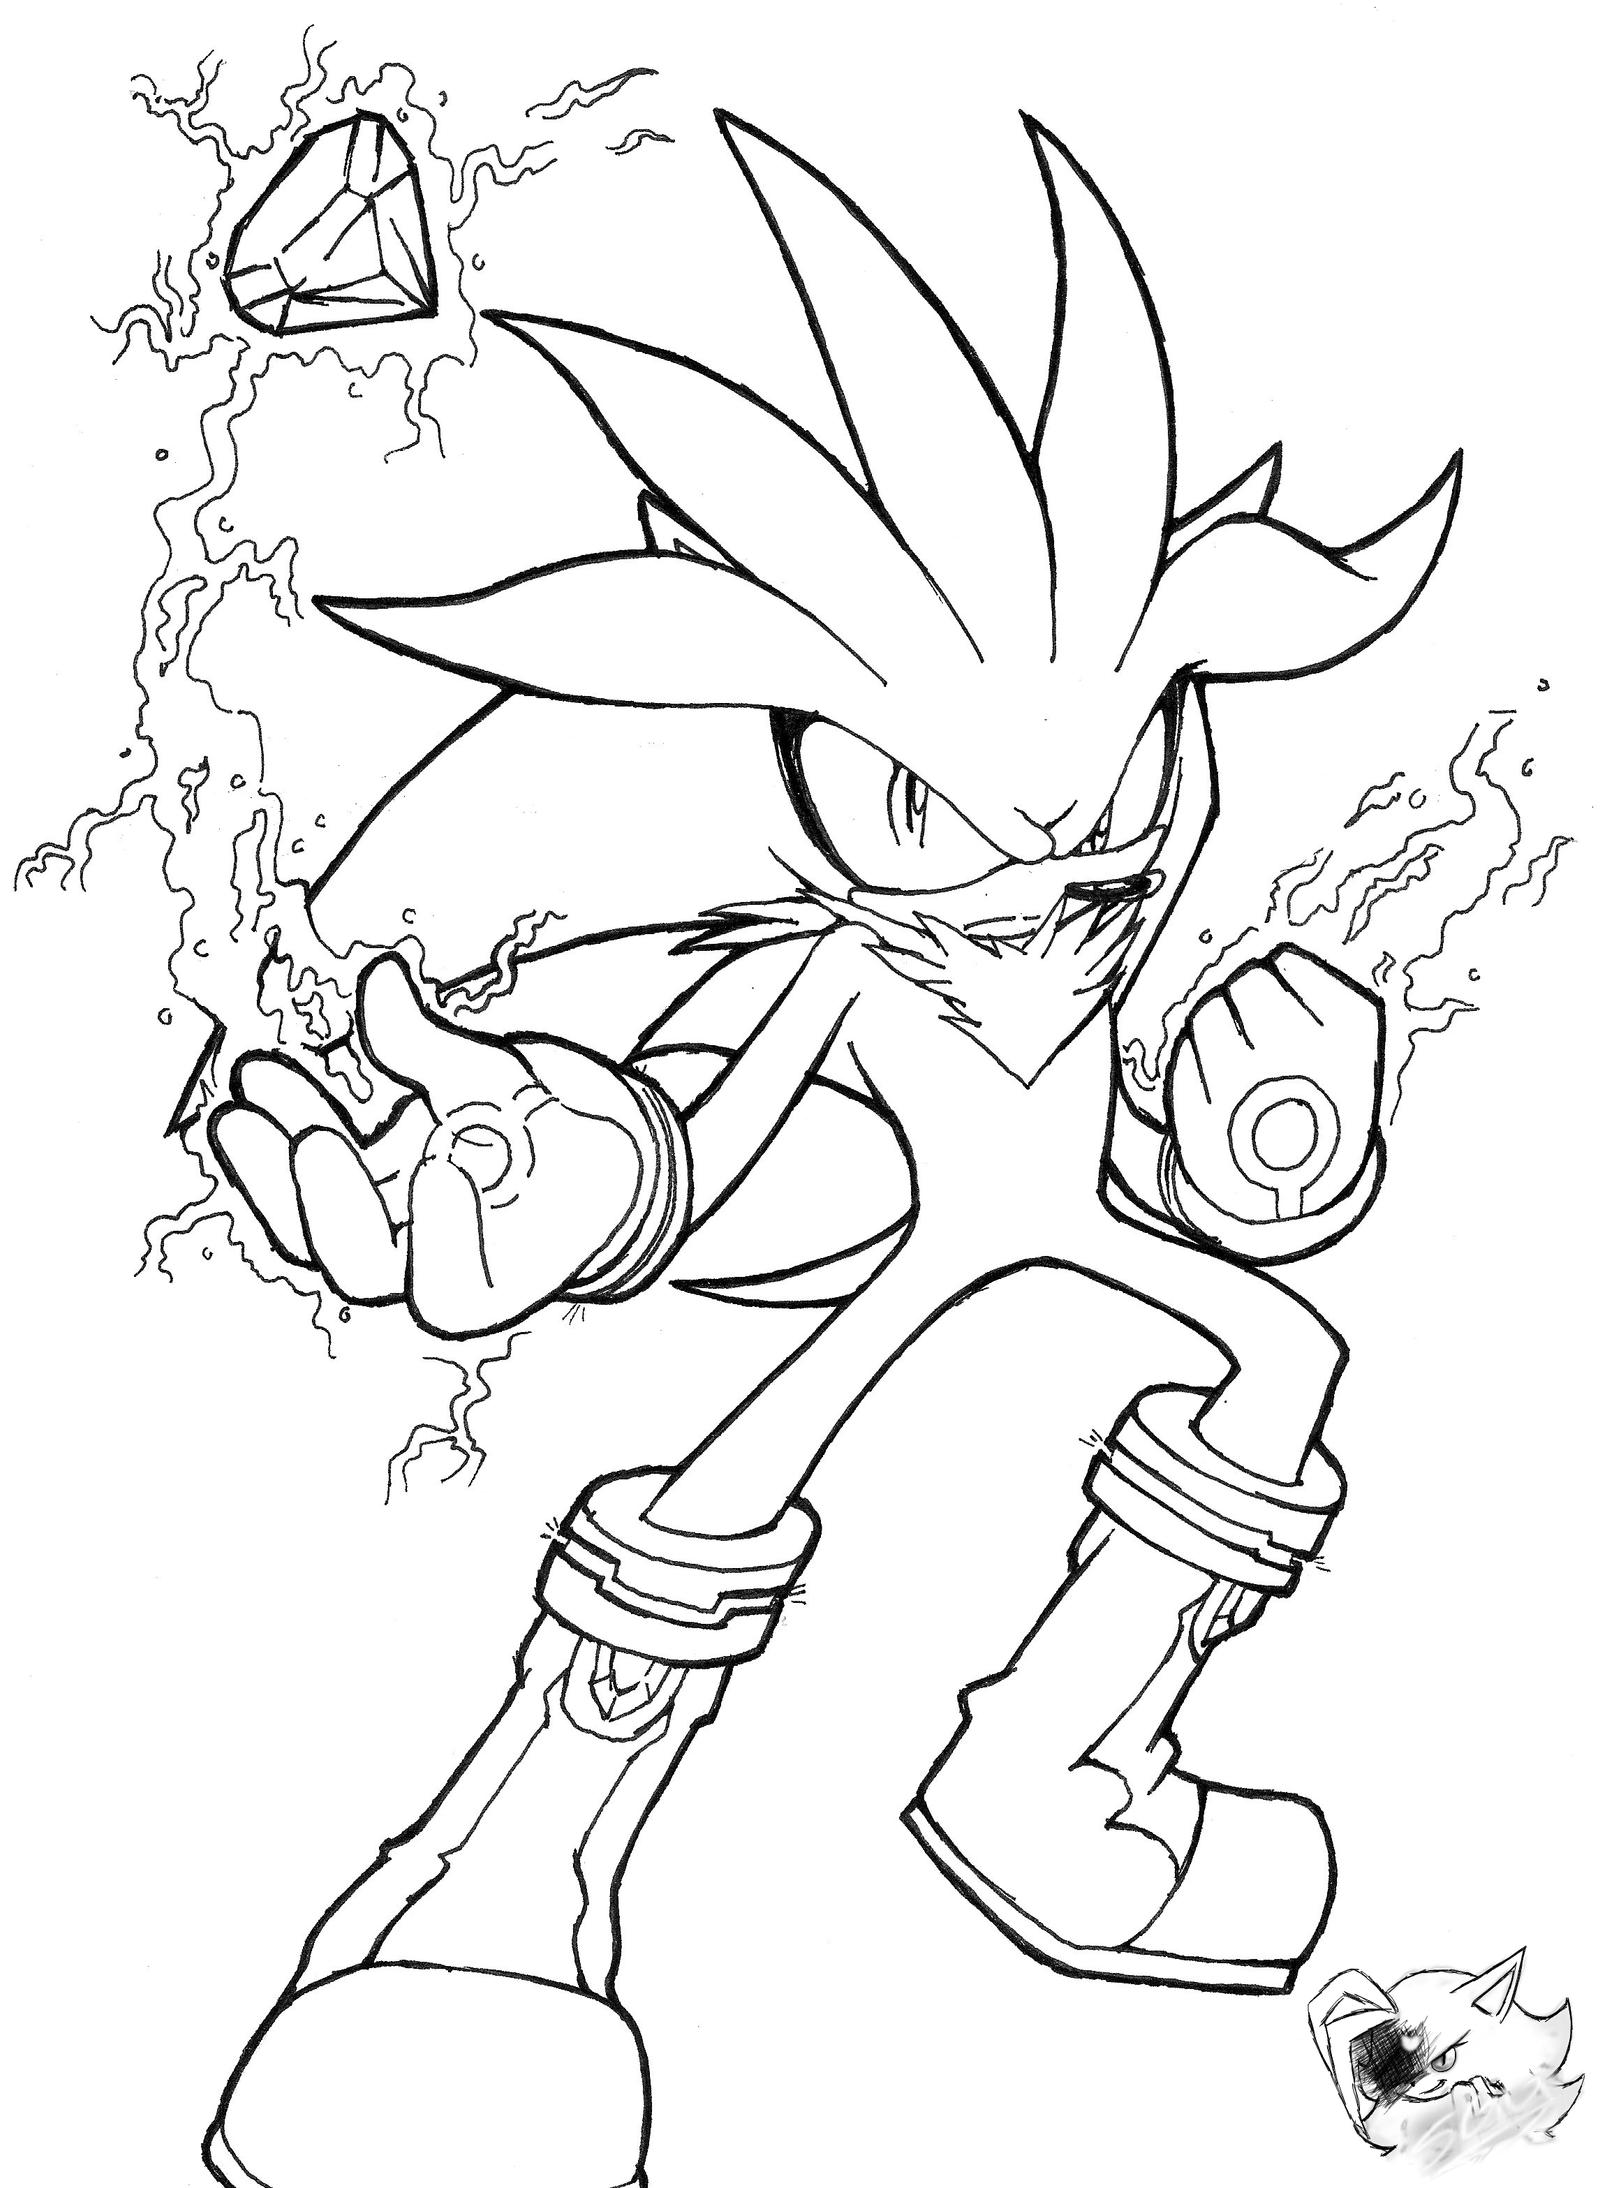 Silver the Hedgehog - Line Art by SonicGirlGamer71551